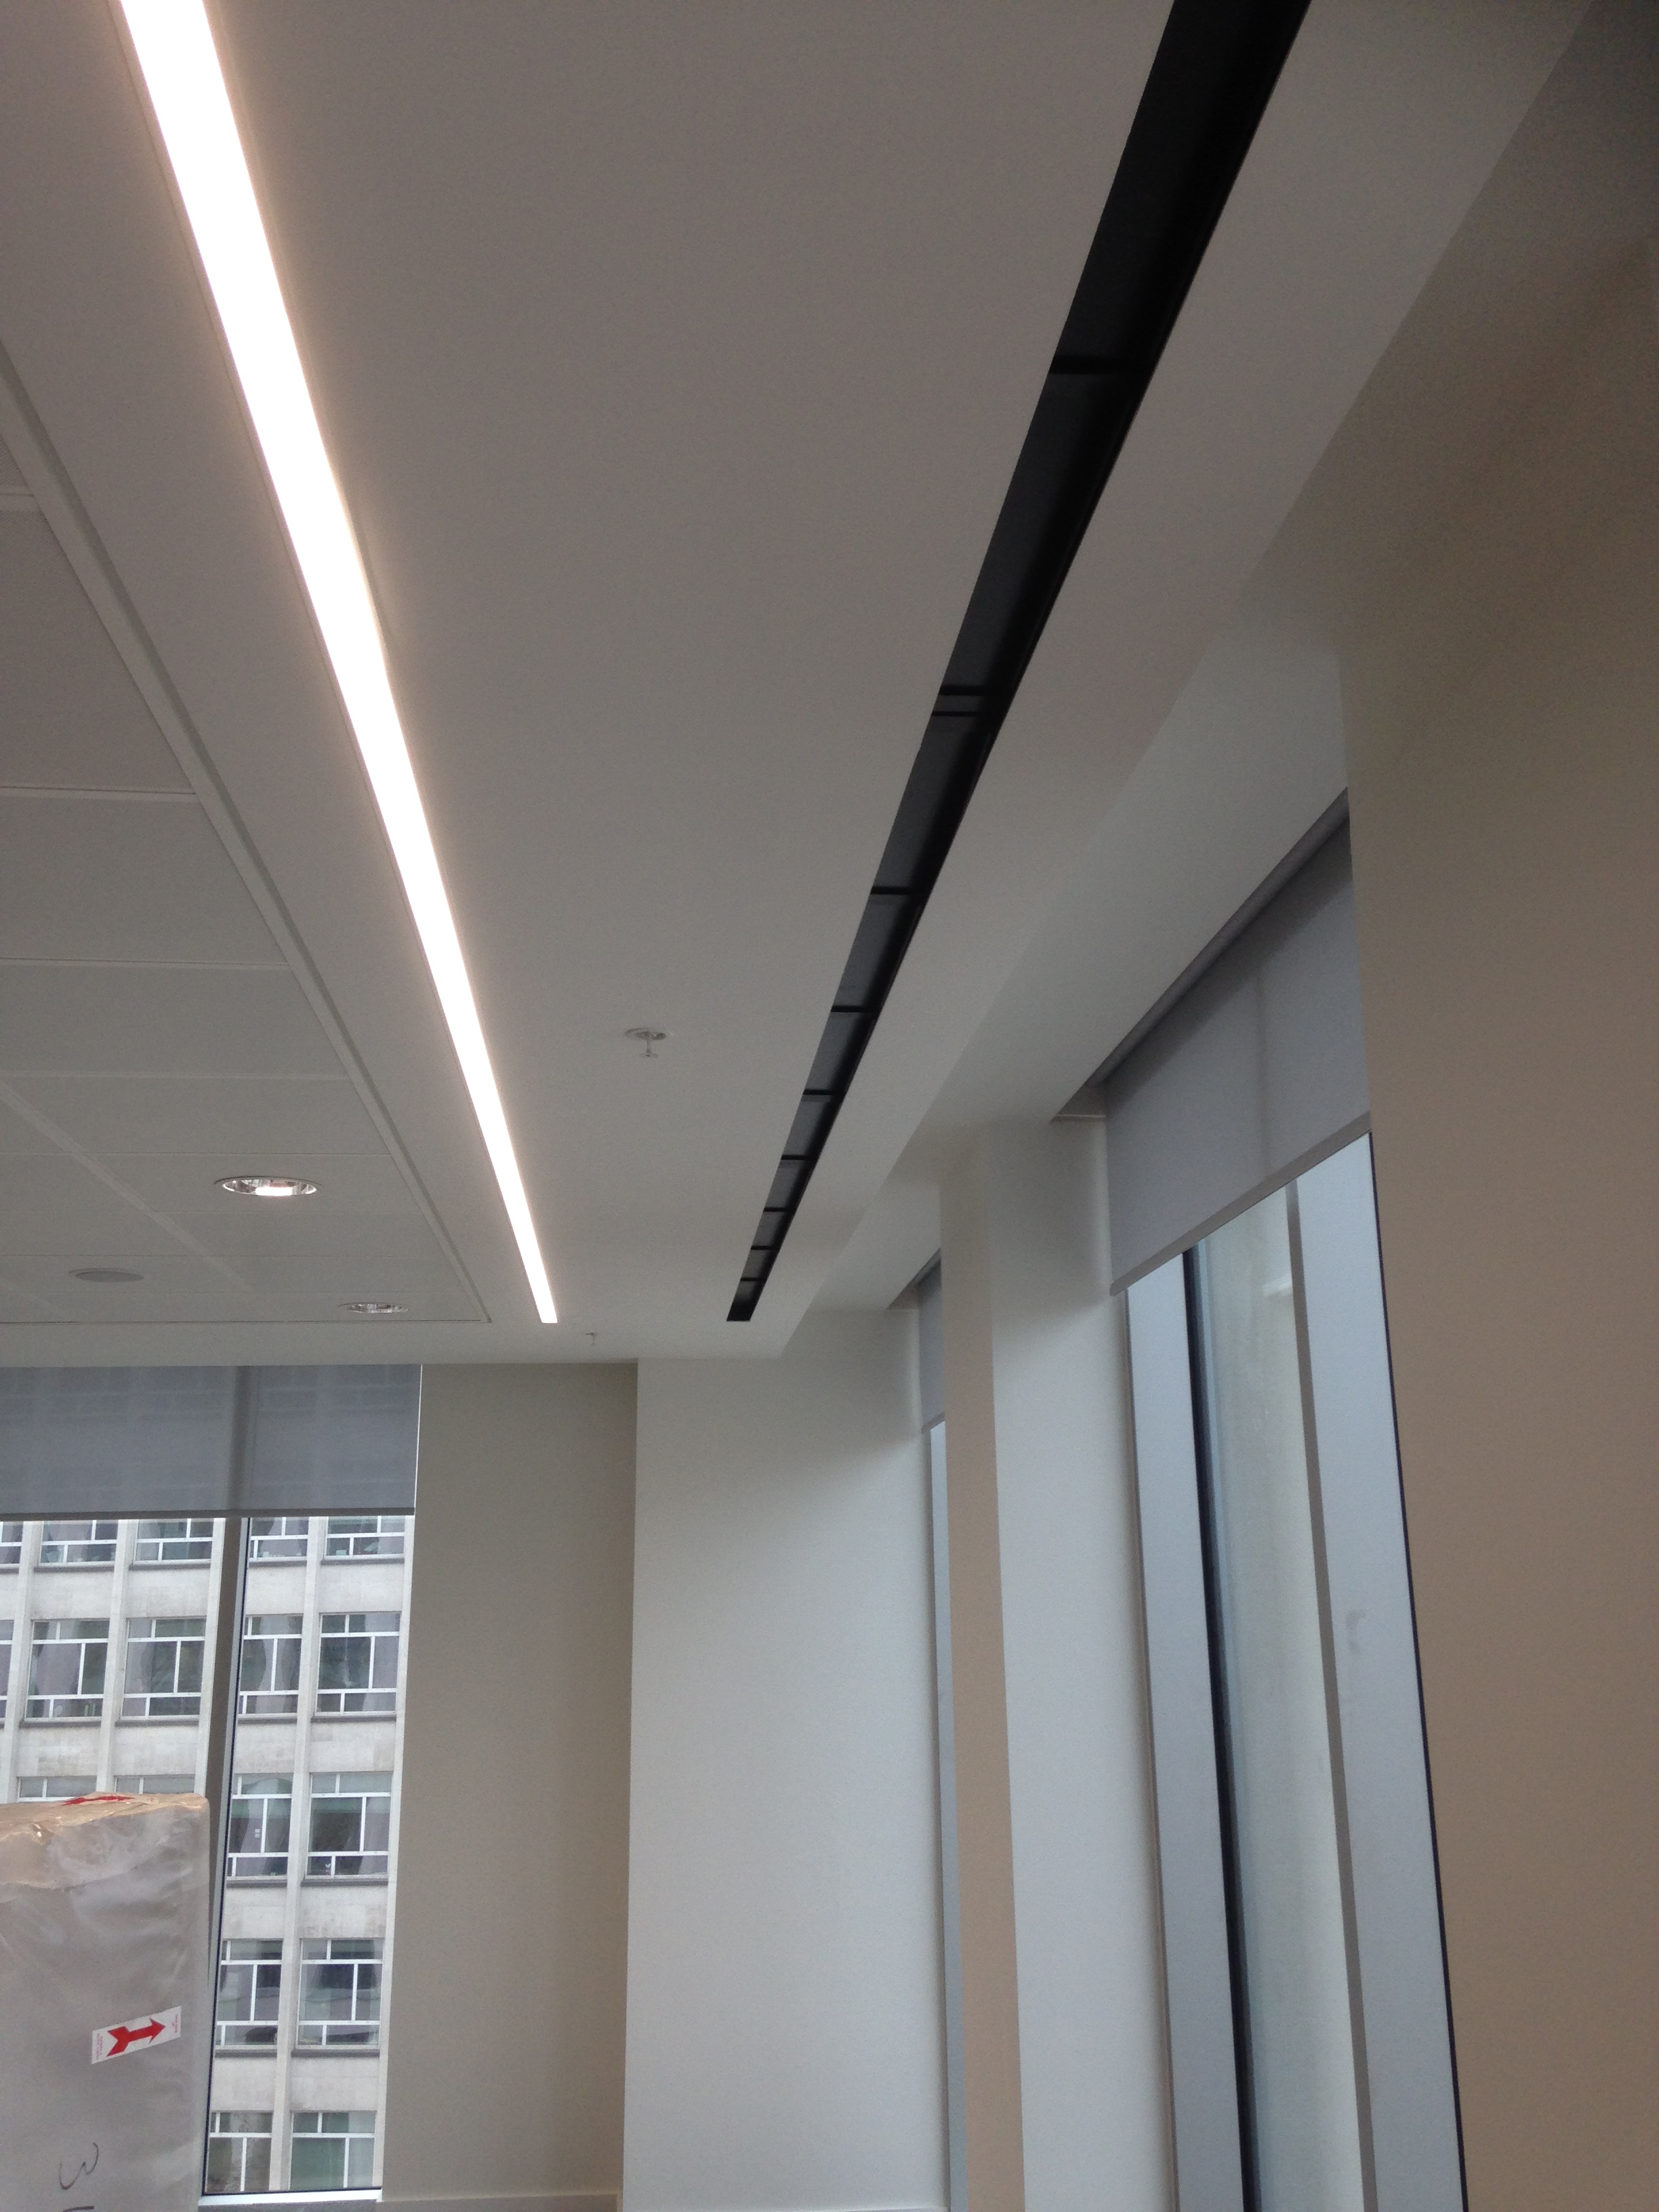 Attractive and quiet diffusers used in new office space